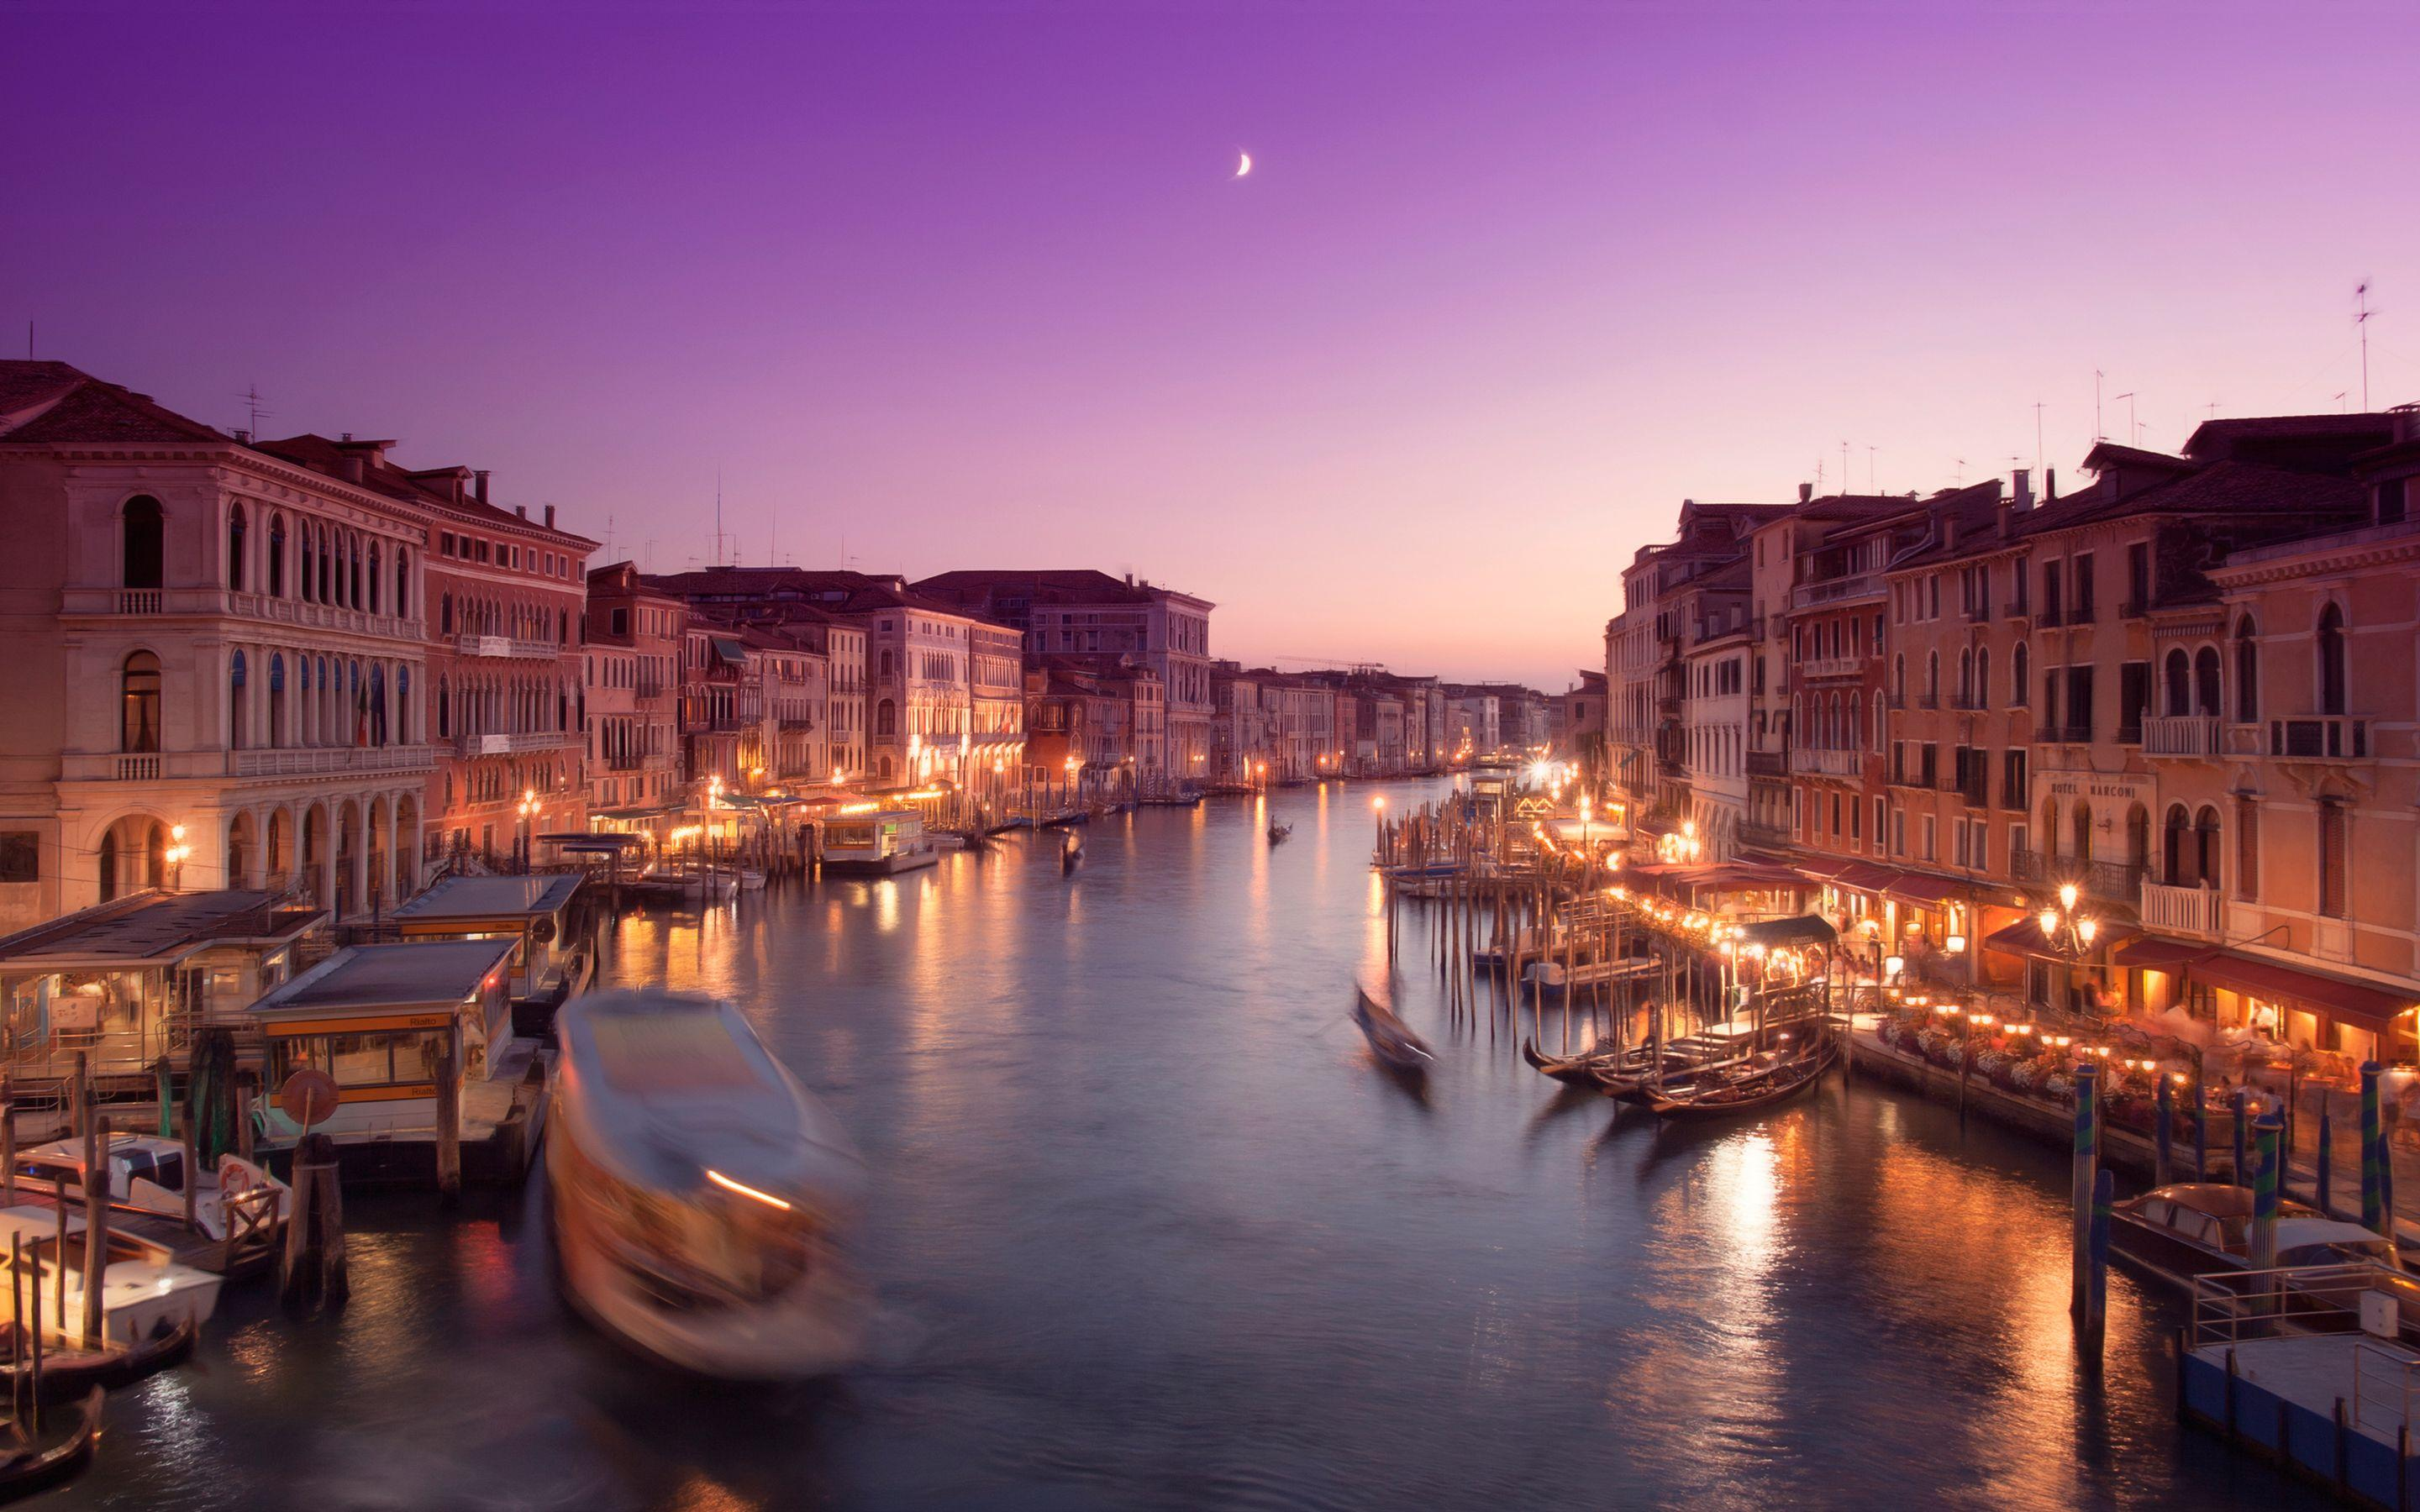 Wallpaper Blink - Best of Venice Wallpapers HD for Android, Windows ...